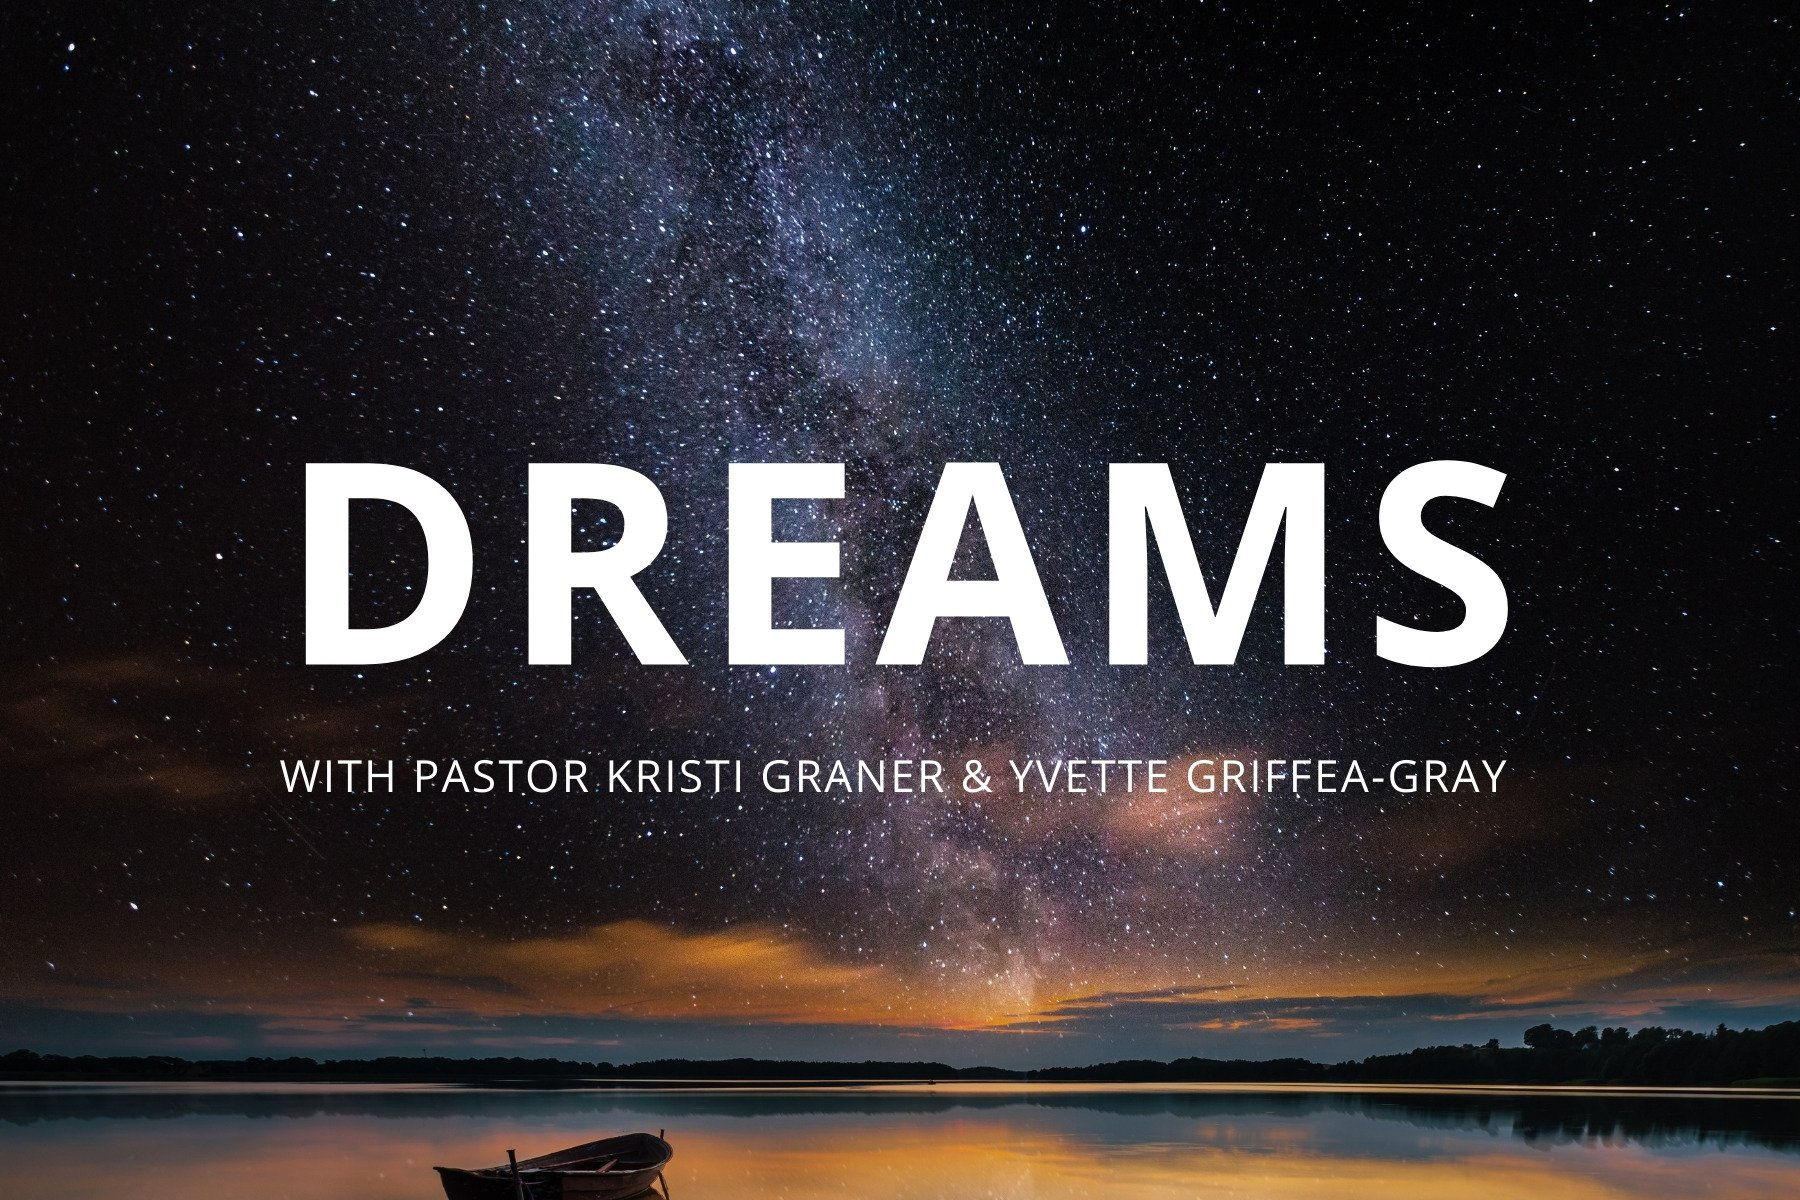 Dreams with Pastor Kristi and Yvette Griffea-Gray